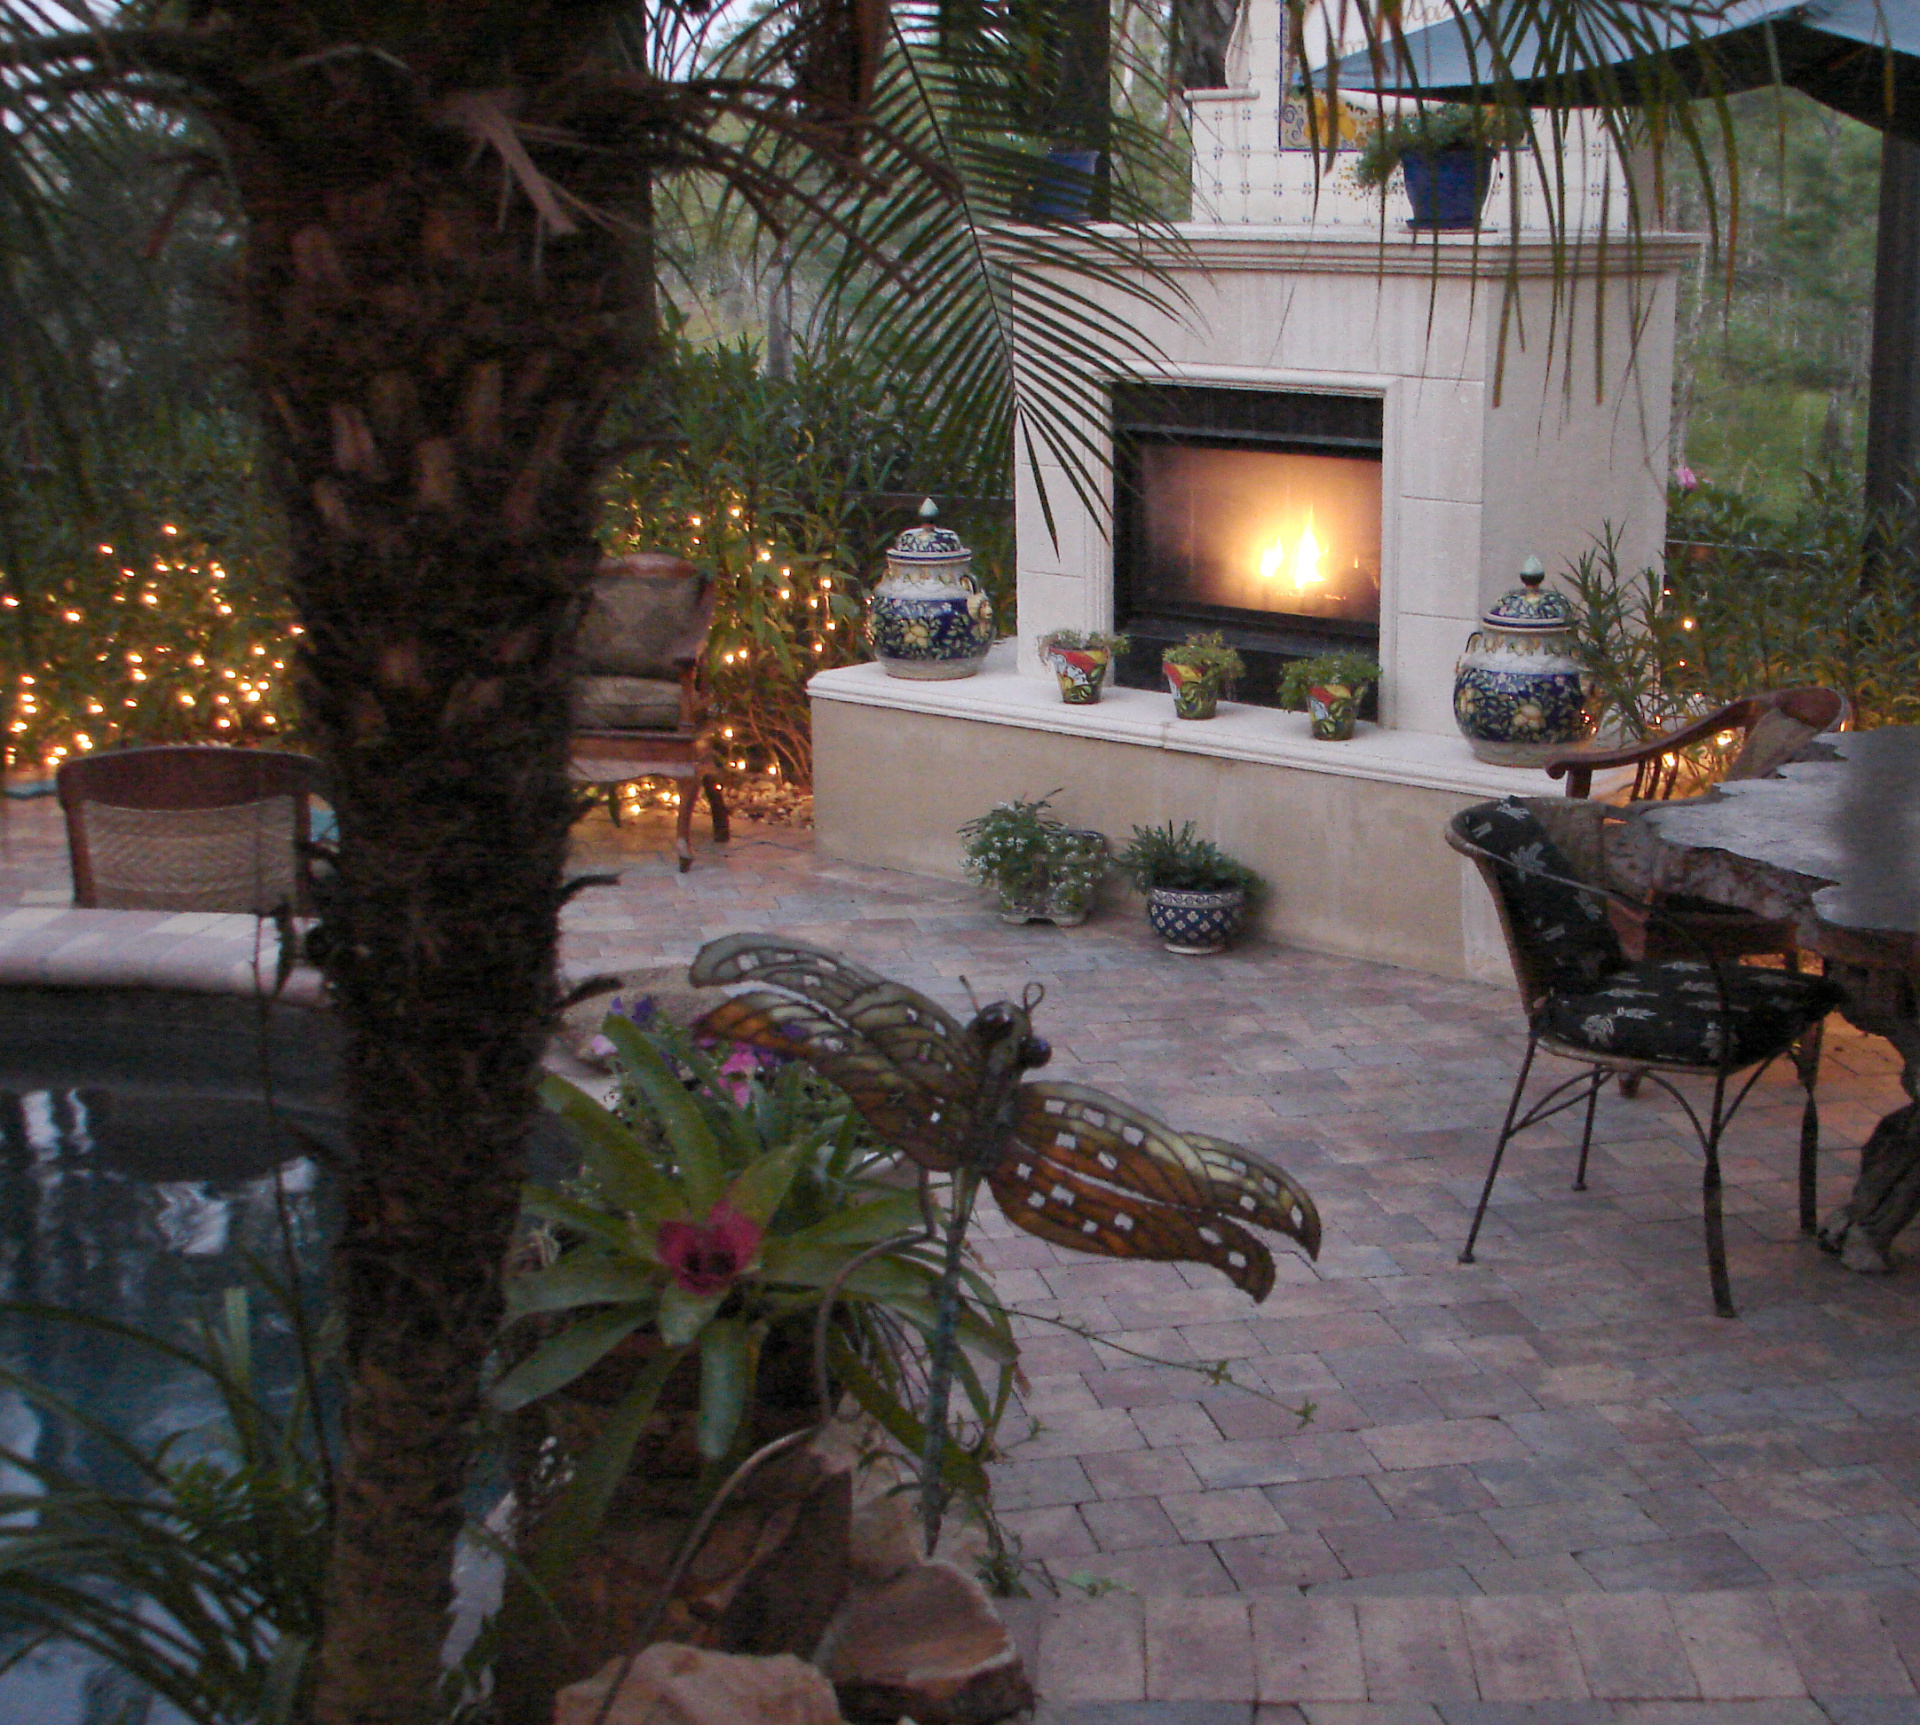 Outdoor Fireplace, Outdoor Living in Orange County